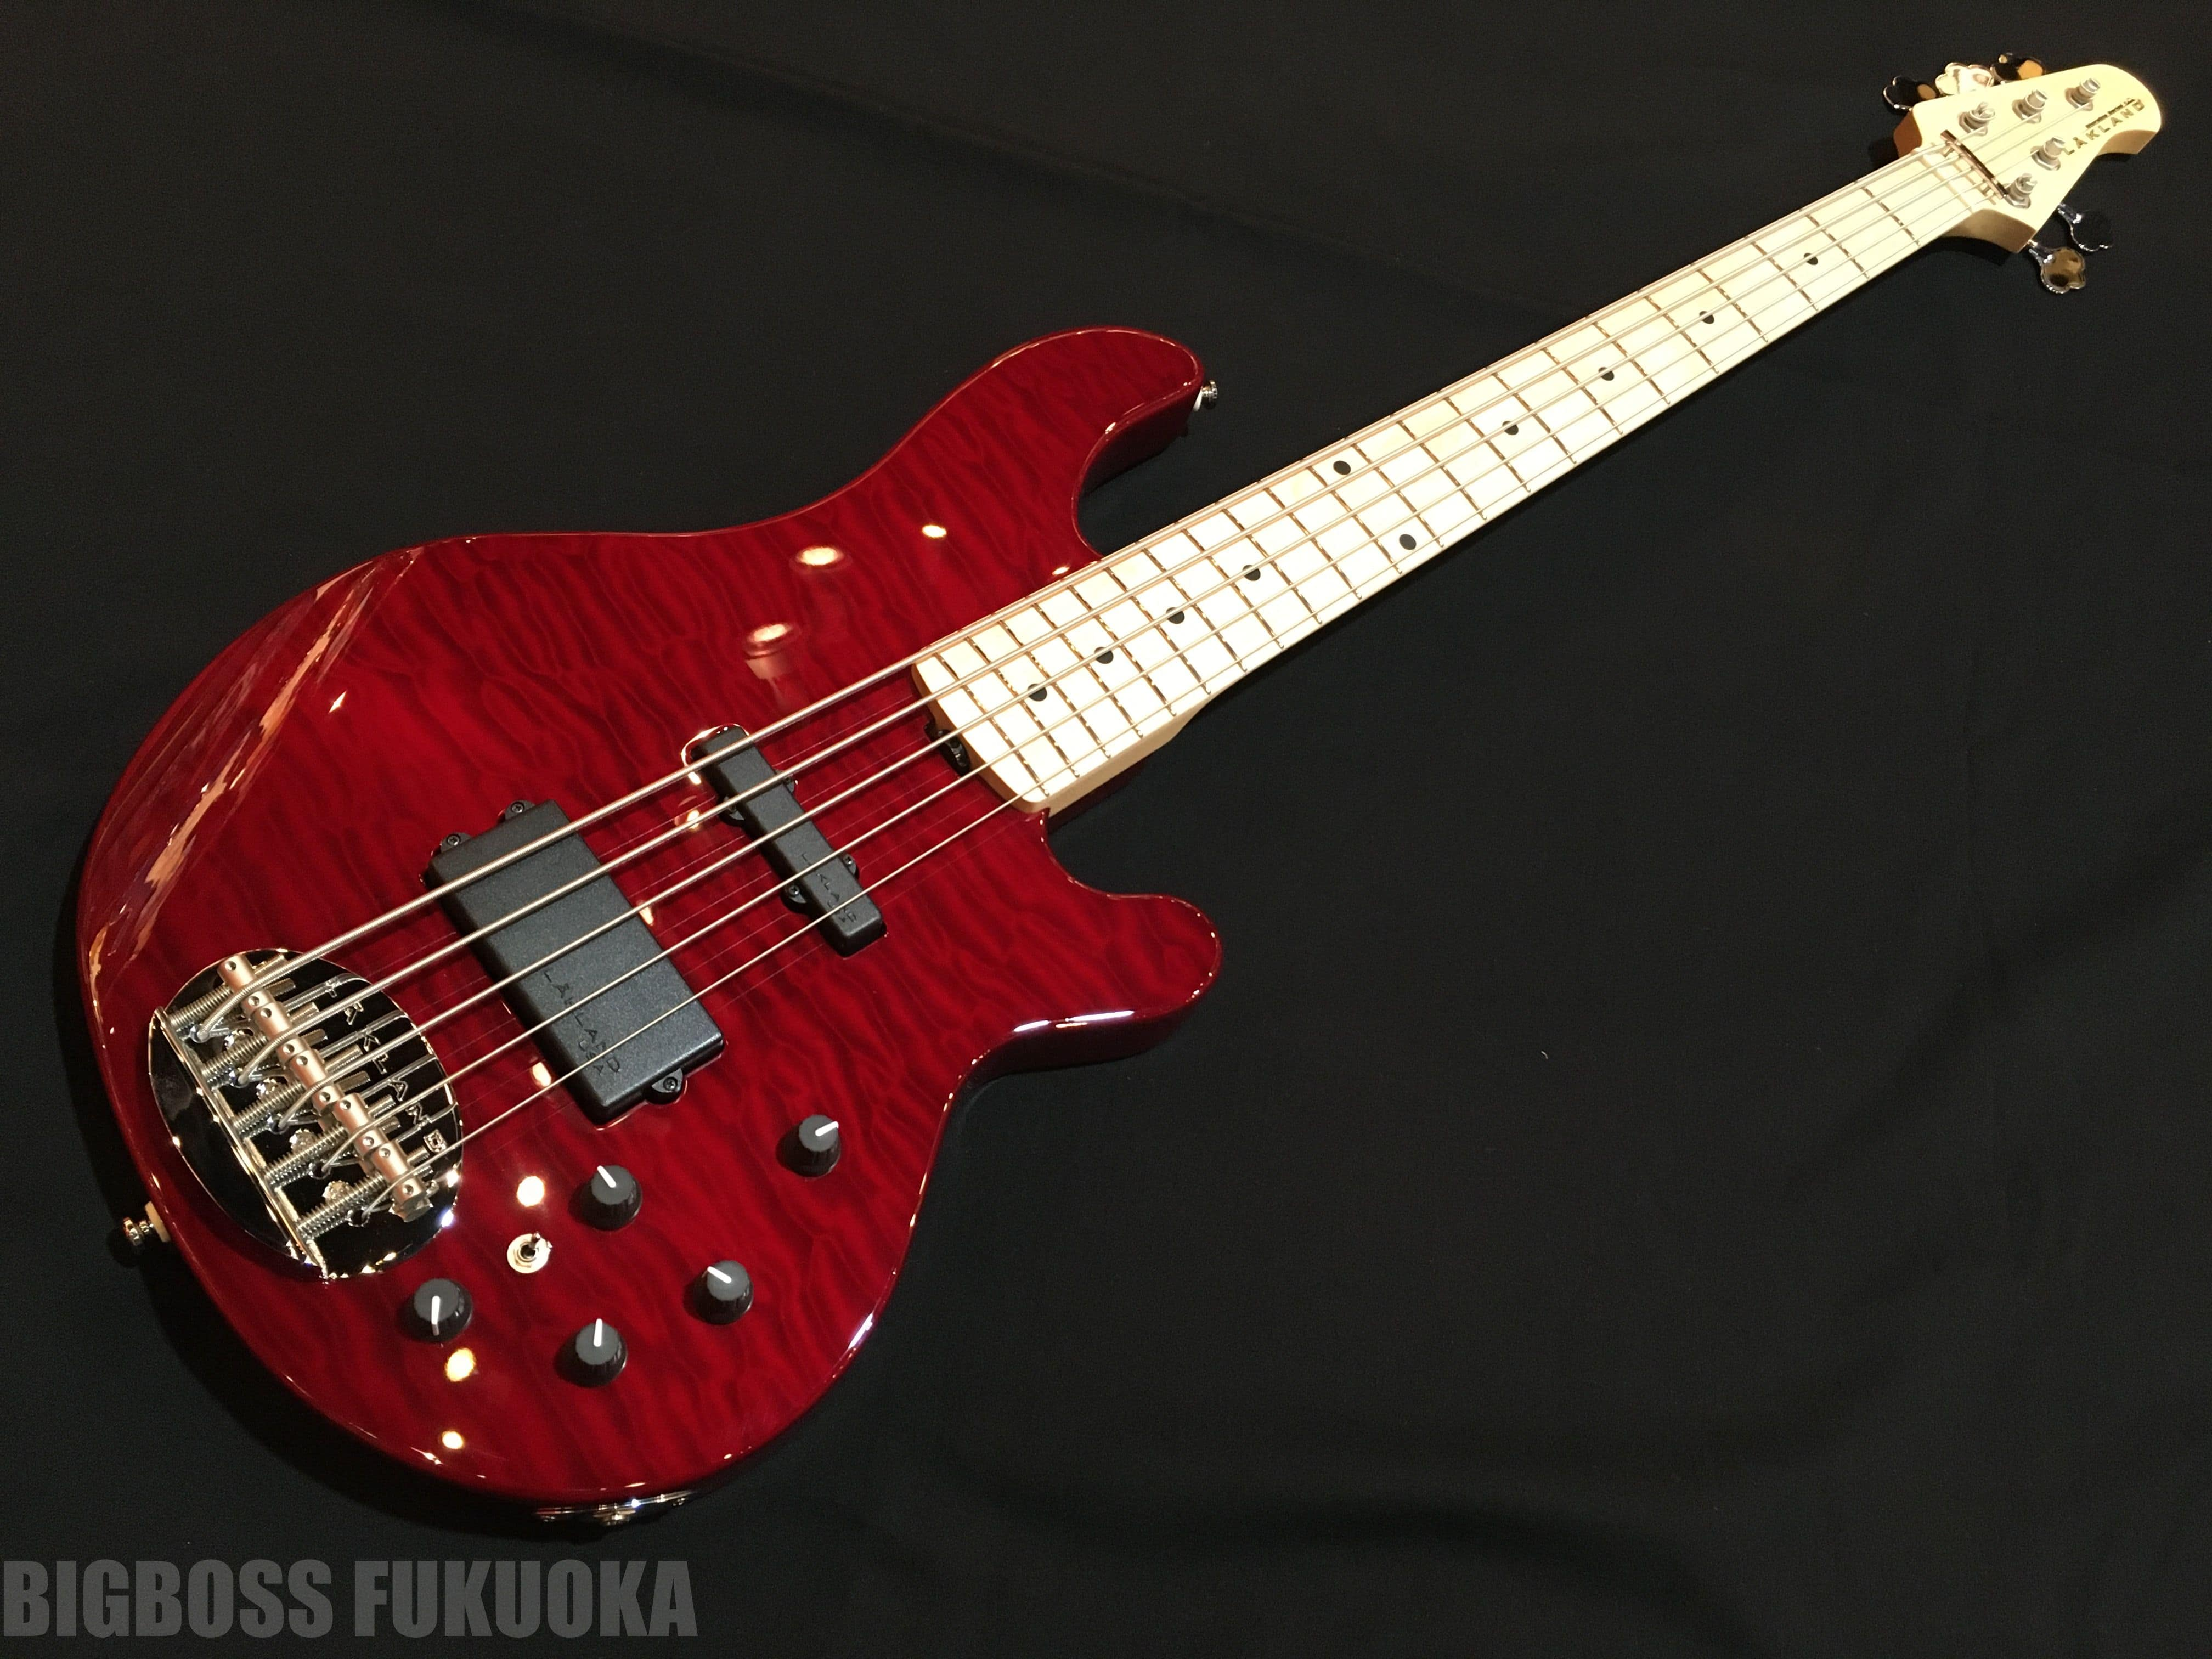 【即納可能】LAKLAND Shoreline SL55-94 Deluxe Maple FB / Burgundy Translucent 福岡店